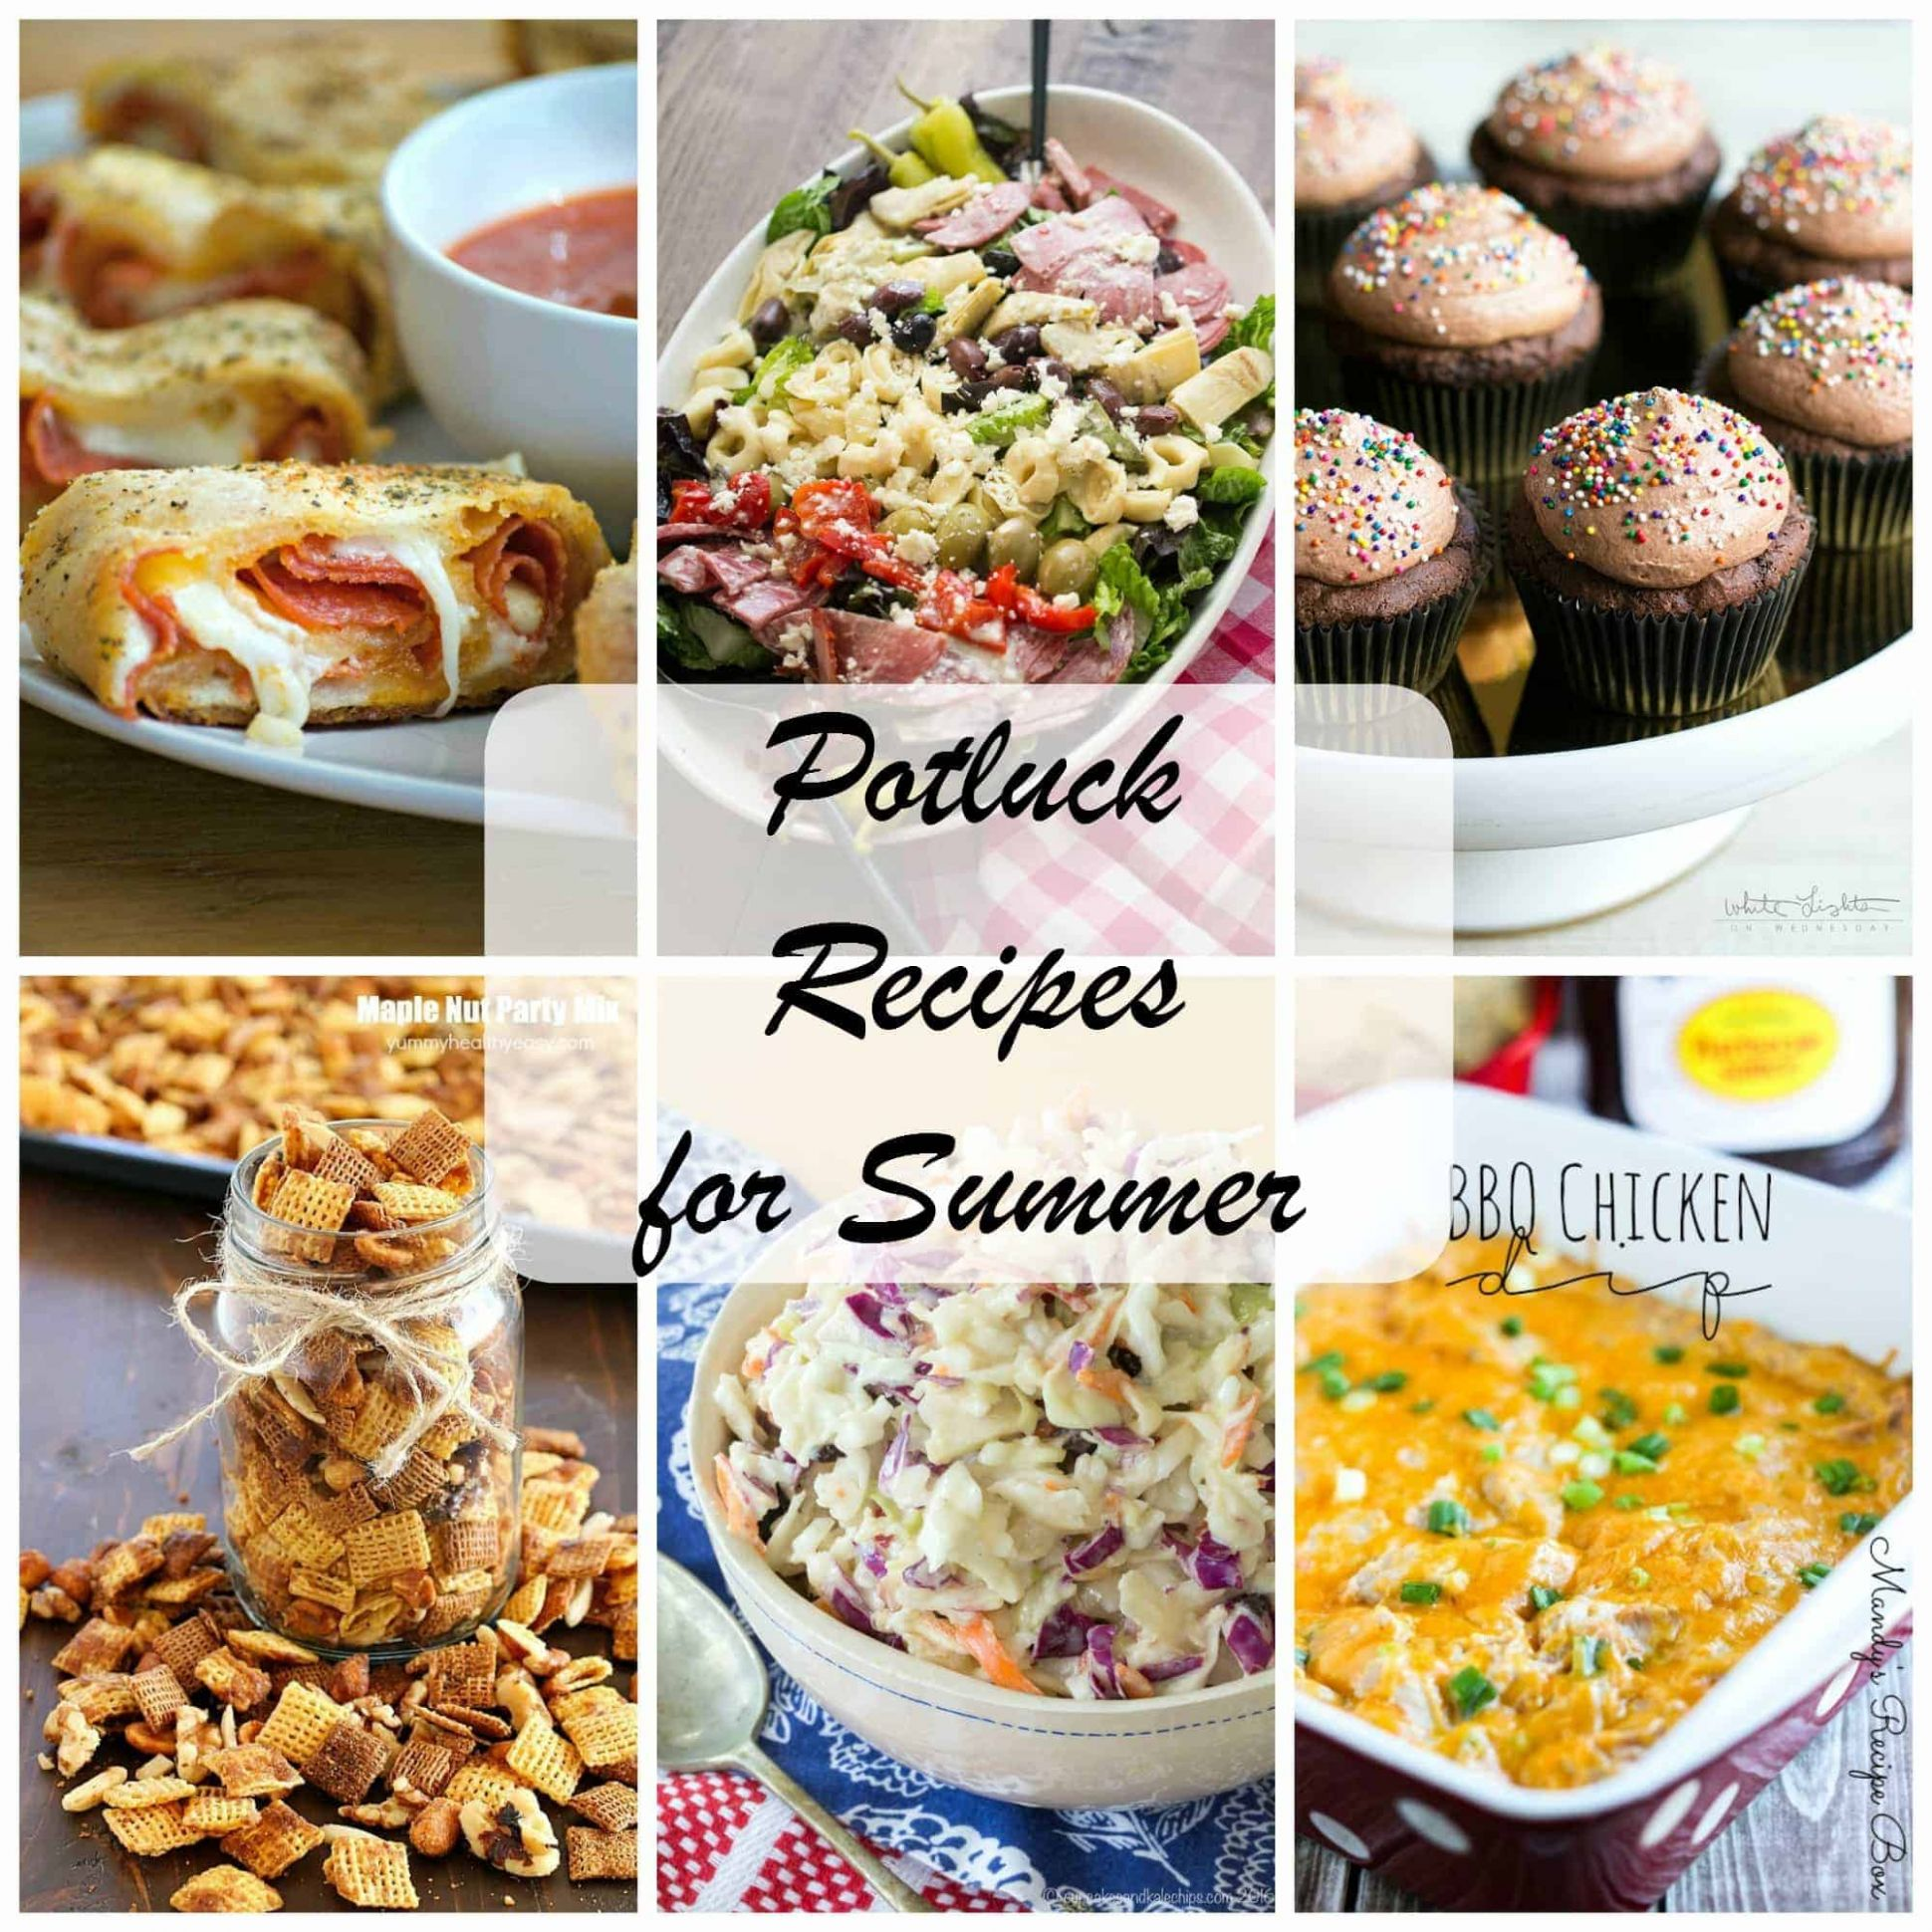 Summer Potluck Recipes - 11 Days of Baking and More - Recipes Summer Potluck